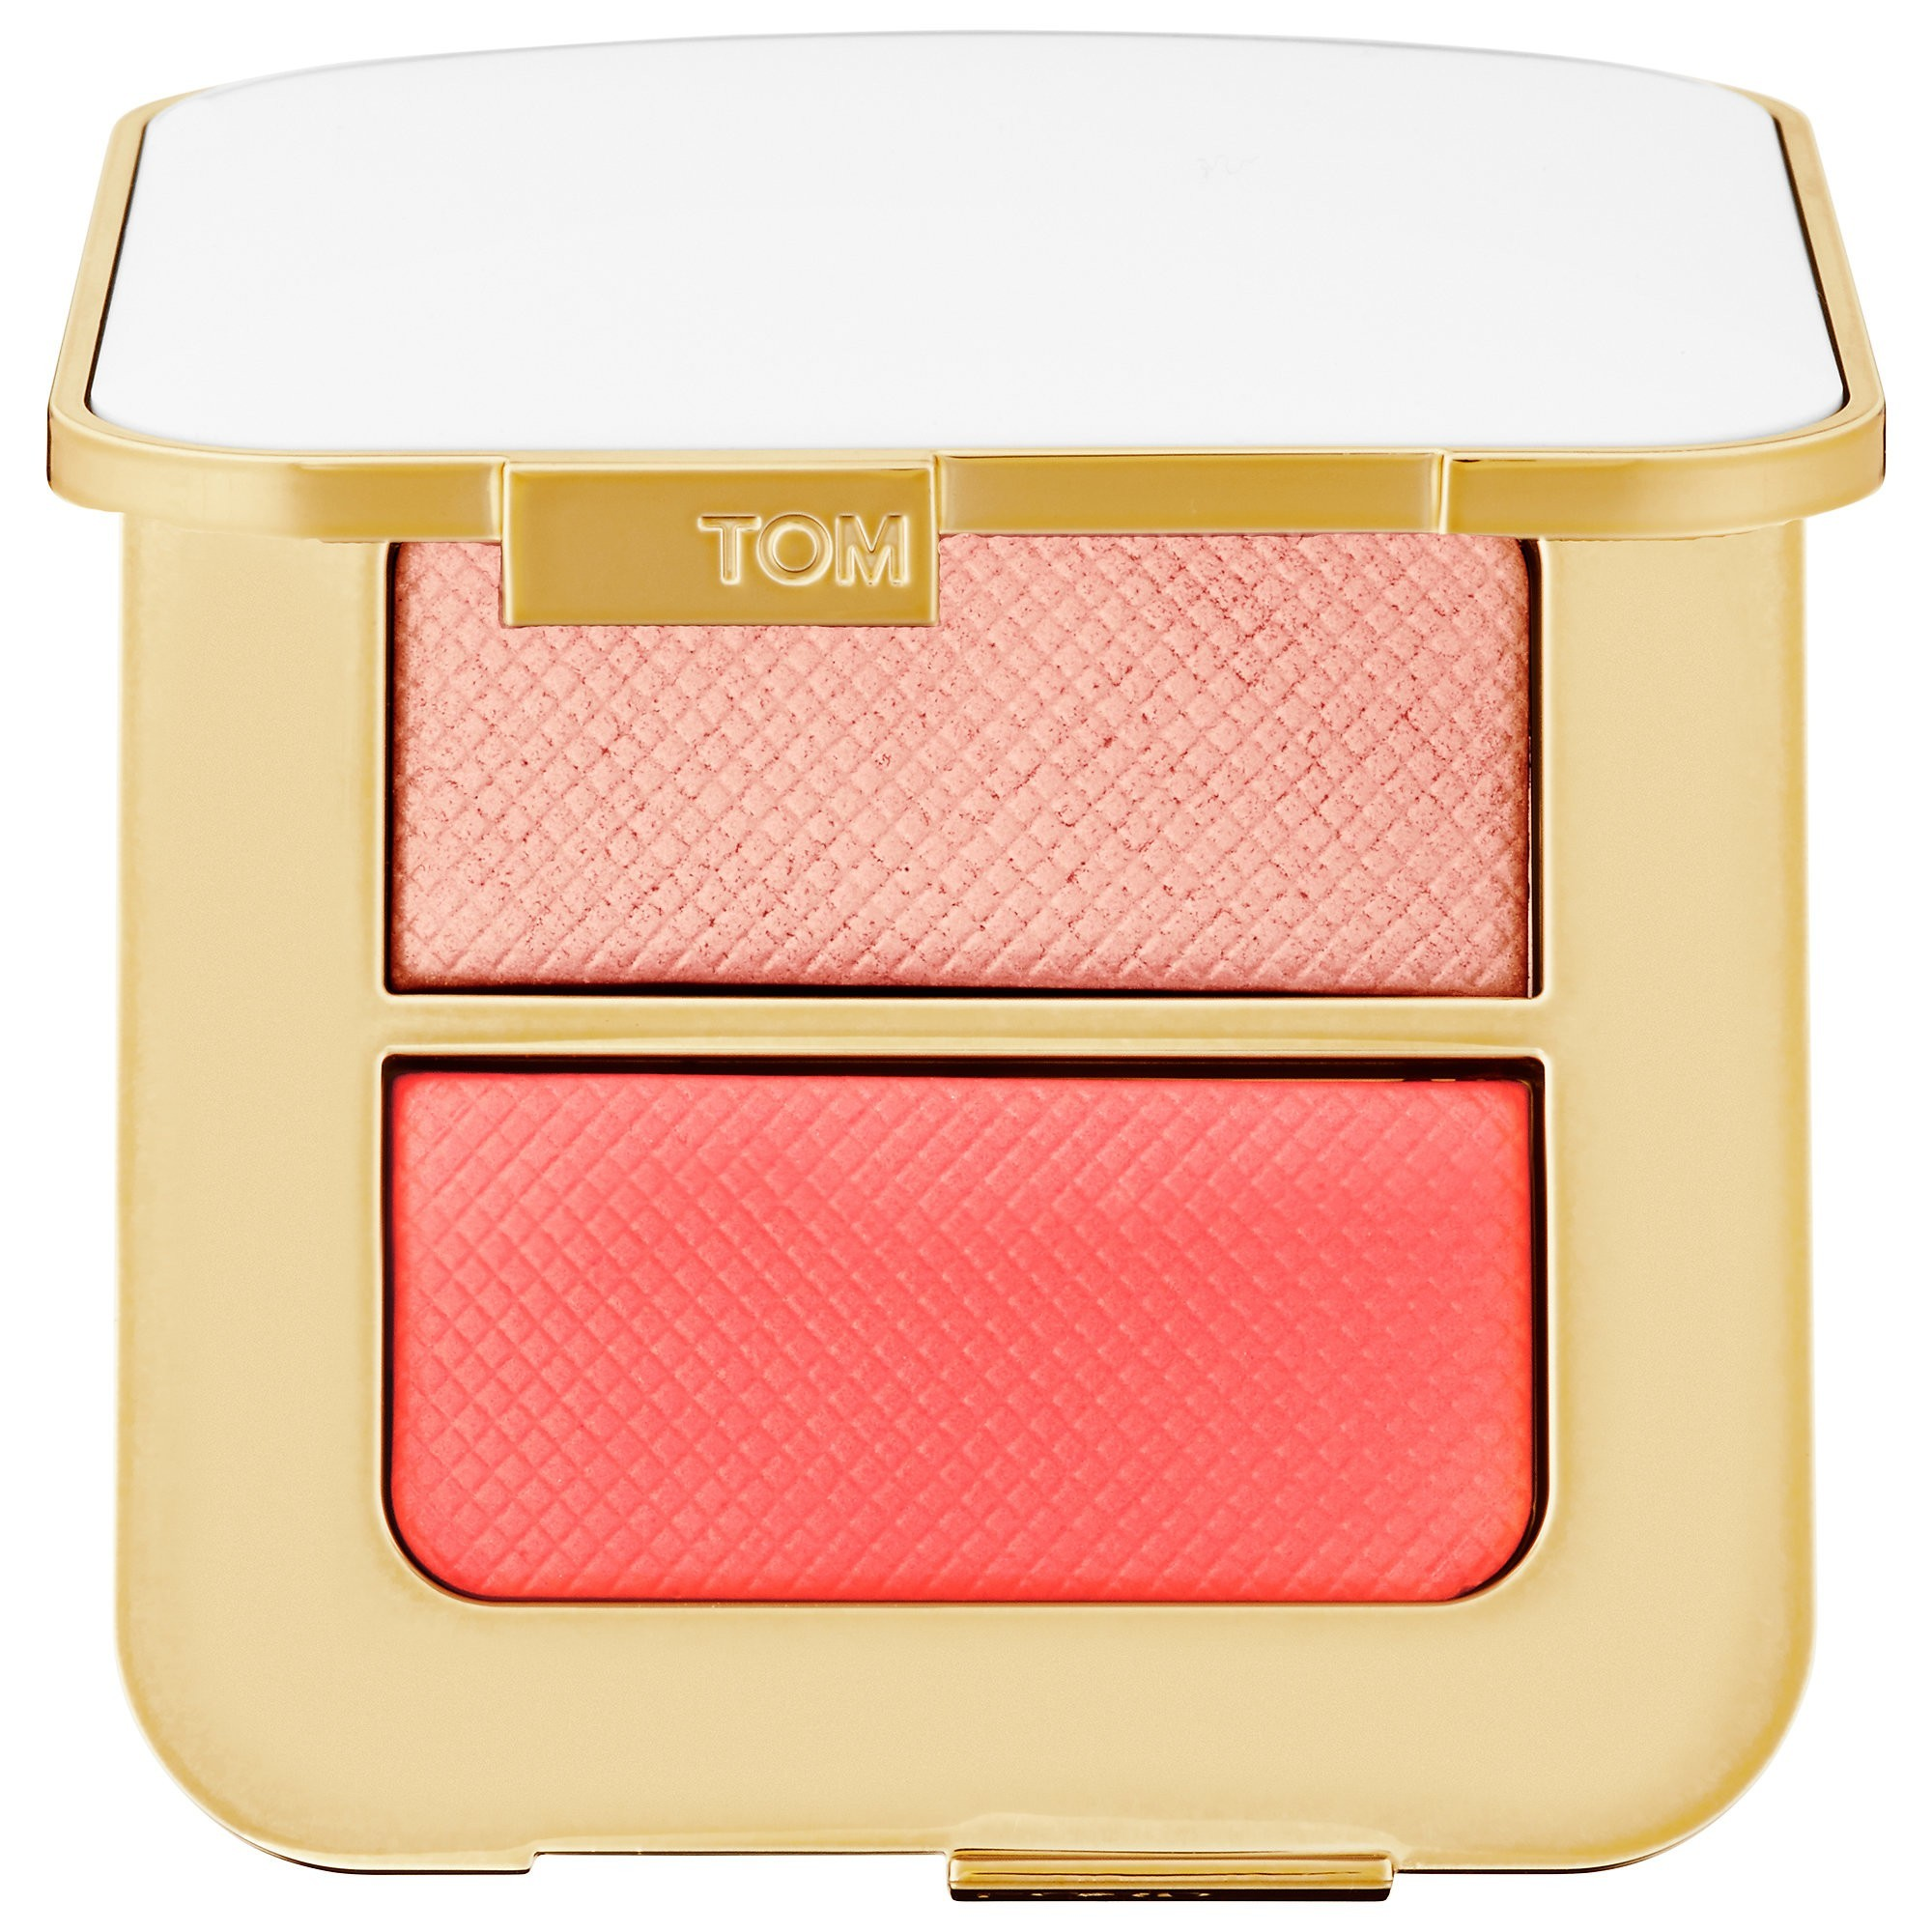 Tom Ford Sheer Cheek Duo Paradise Lust